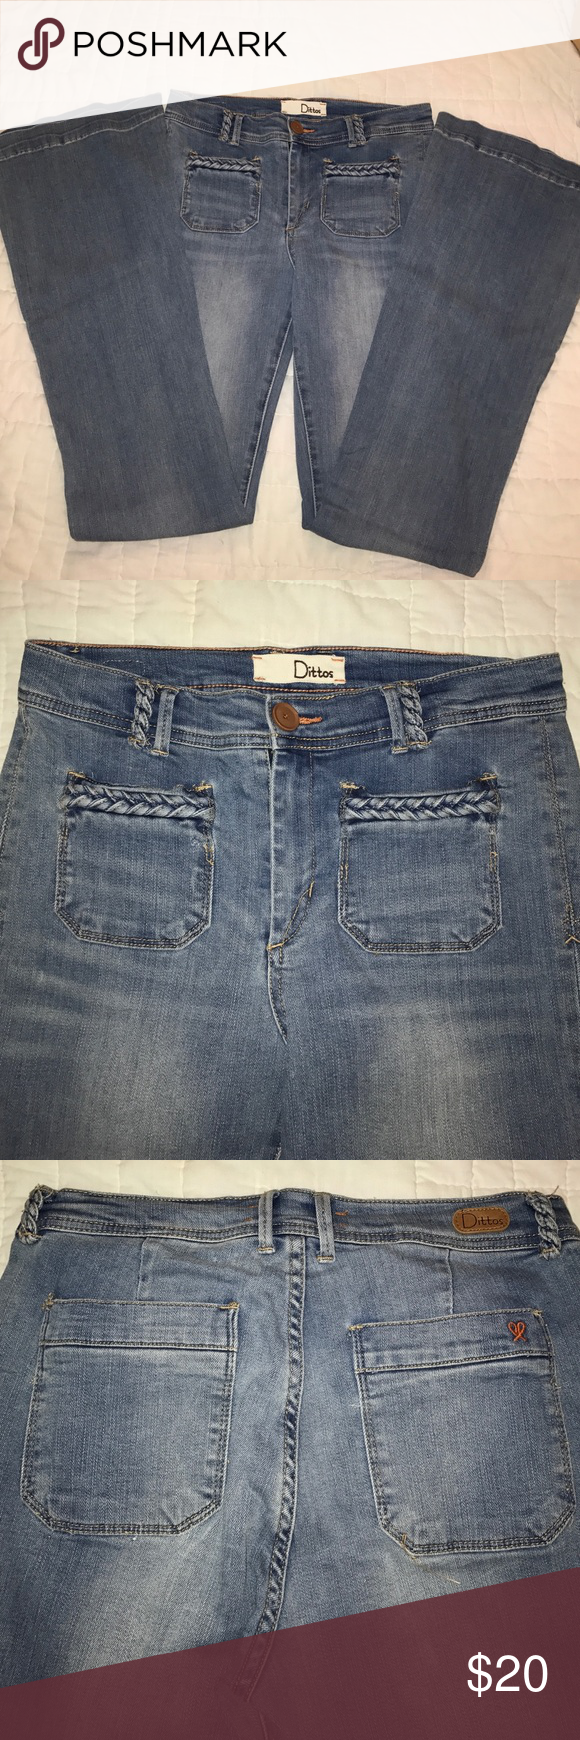 NWOT NEVER WORN Ditto brand high waist flare sz 28 Super cute high fashion Ditto jeans. High waist flare leg is back!!! Don't miss out on these flawless jeans Ditto Jeans Flare & Wide Leg